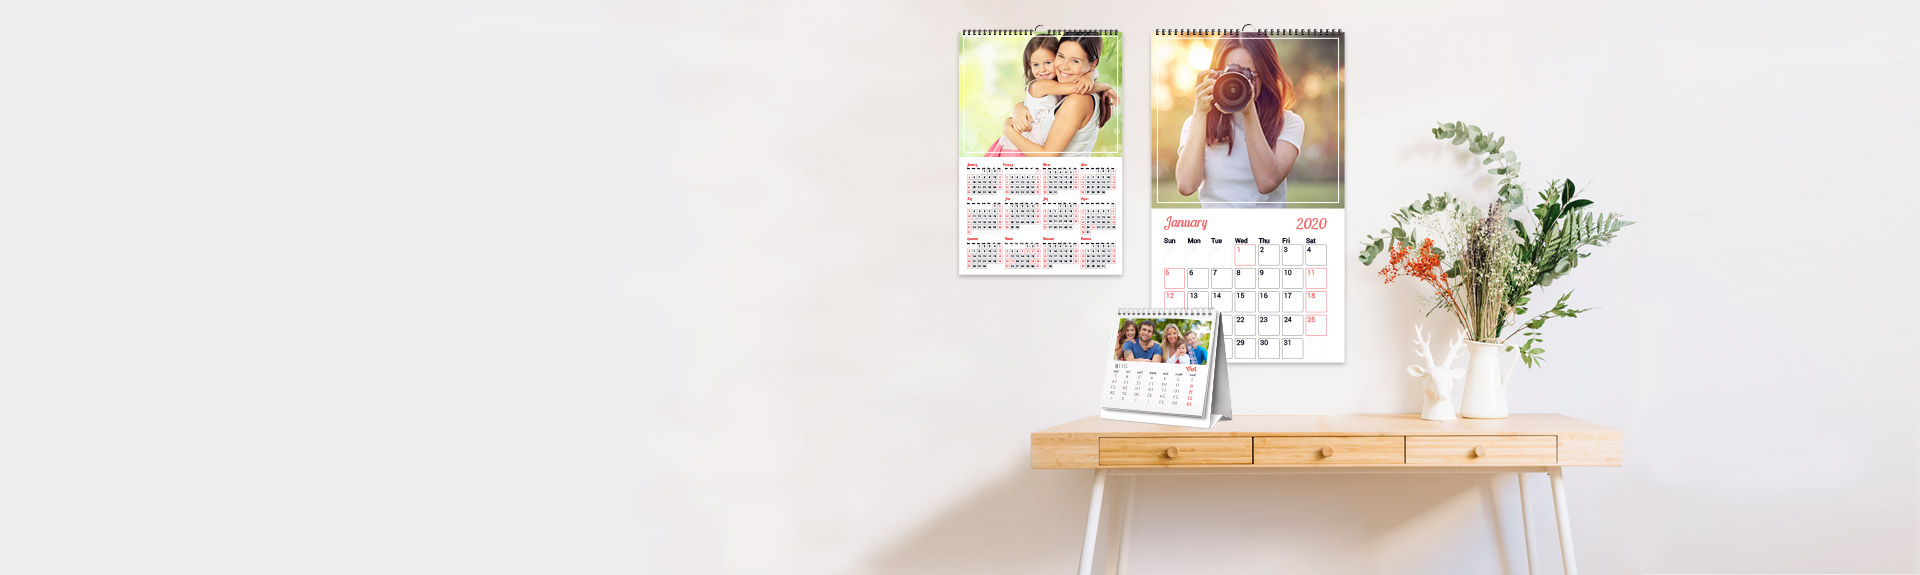 Personalized Photo Calendar Printing Online Canada | Canvaschamp with regard to Canva Calendar Maker